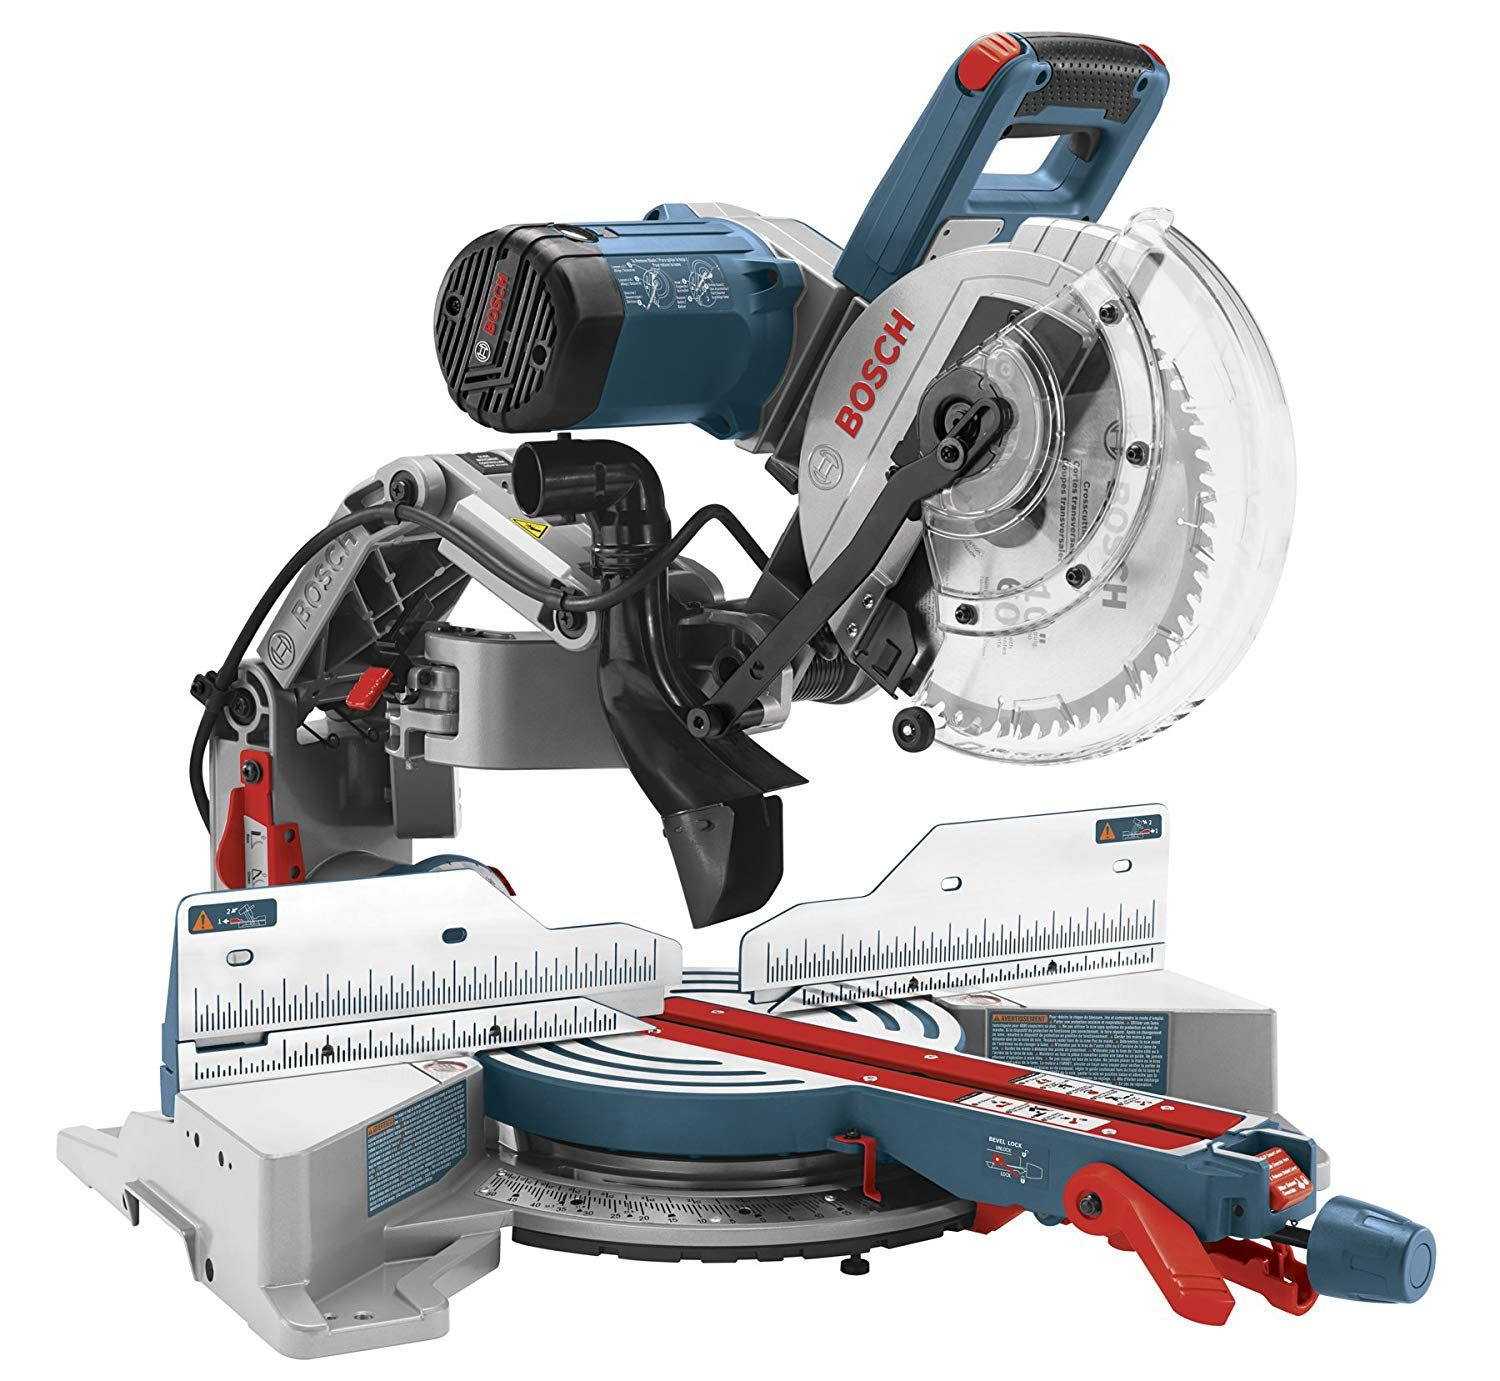 Bosch 10 Inch 15 Amp Dual Bevel Axial Glide Compact Miter Saw Cm10gd Check This Awesome Product By Going To The Miter Saw Bosch Sliding Compound Miter Saw